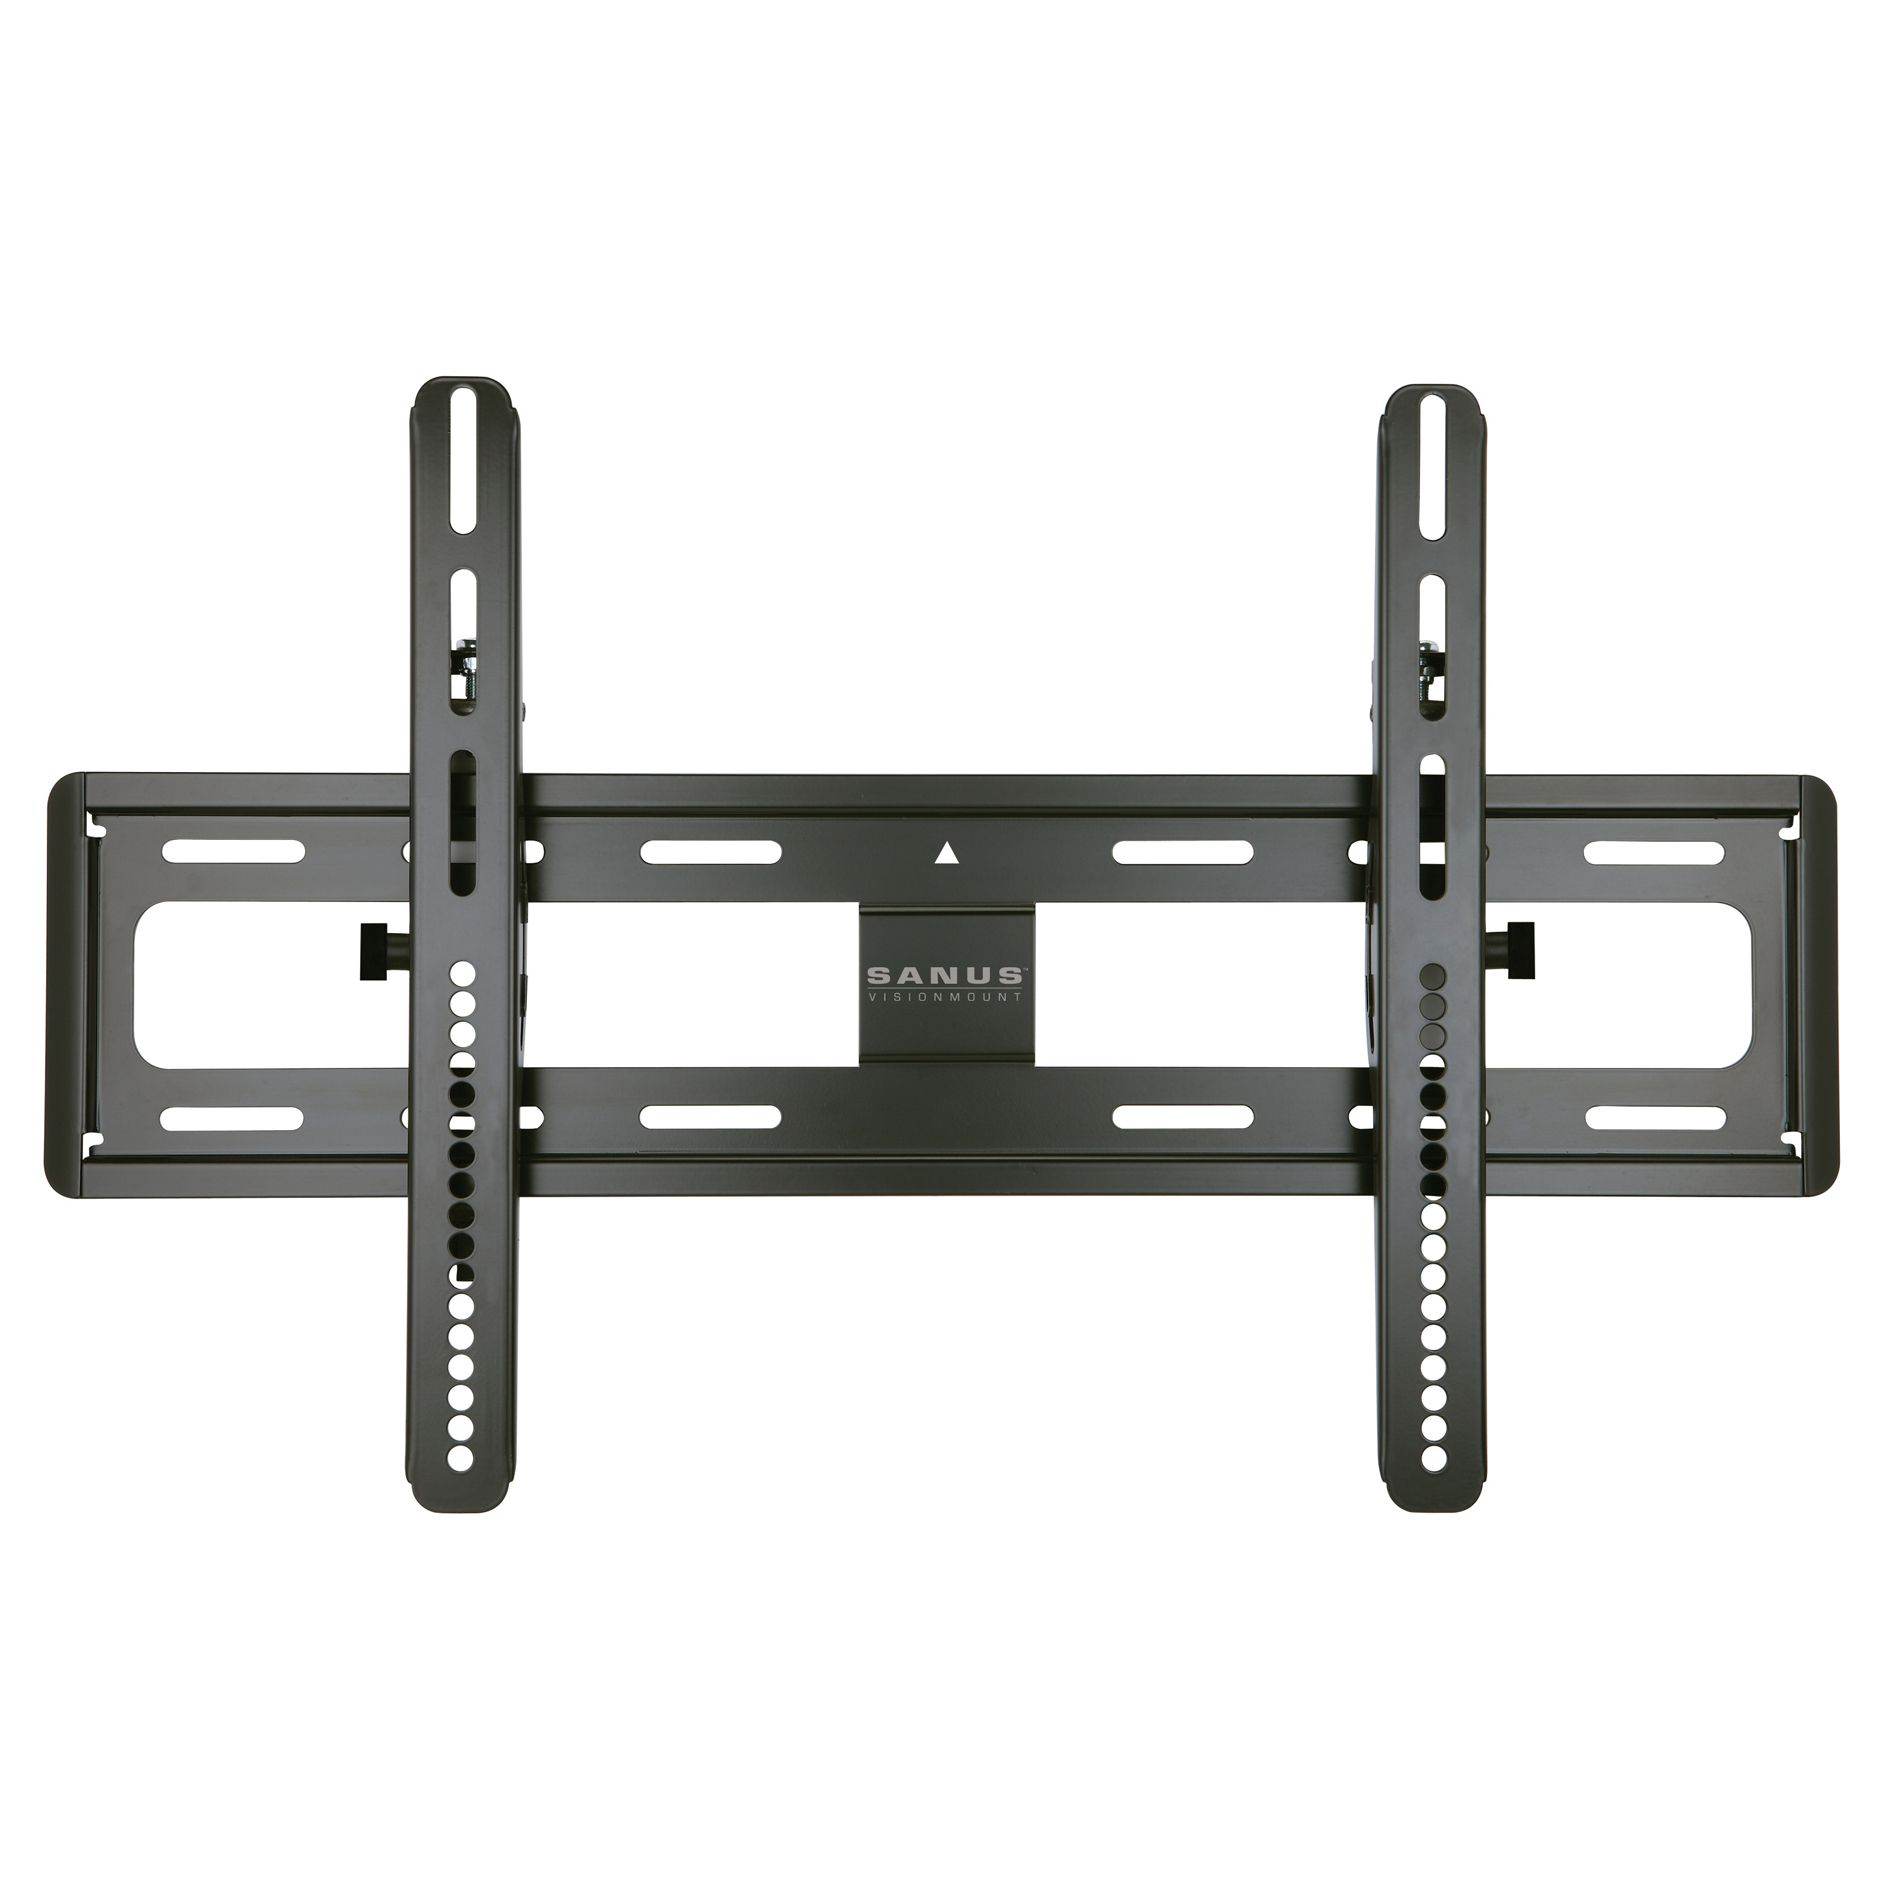 Kmart Tv Mount Sanus Vmpl50a B1 Tilting Wall Mount For 32 70 Quot Flat Panel Tvs